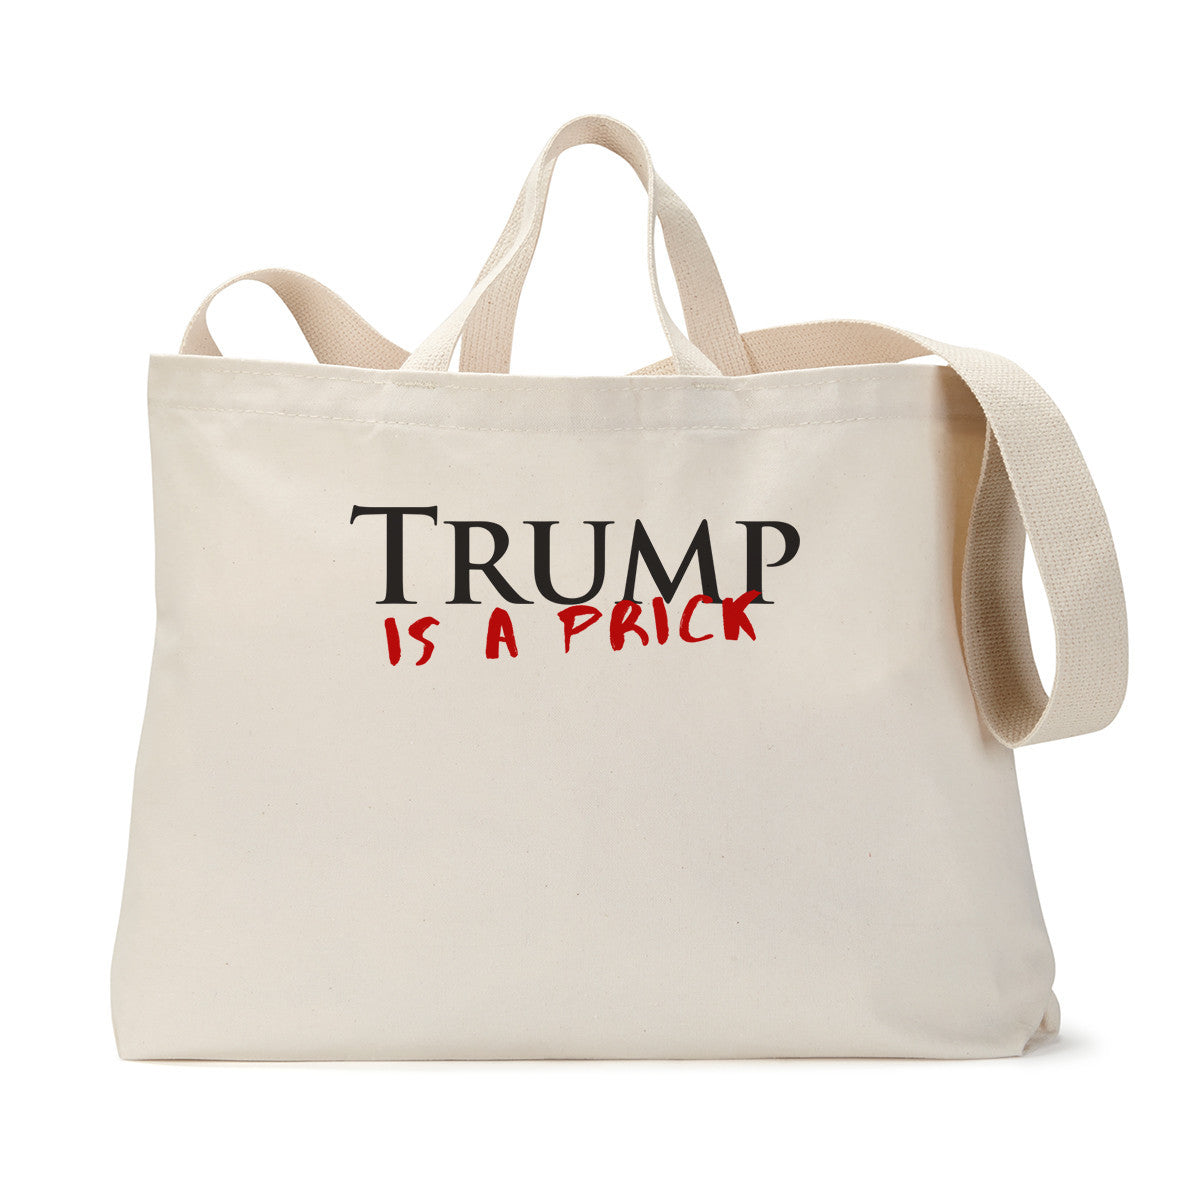 Trump is a Prick Tote Bag